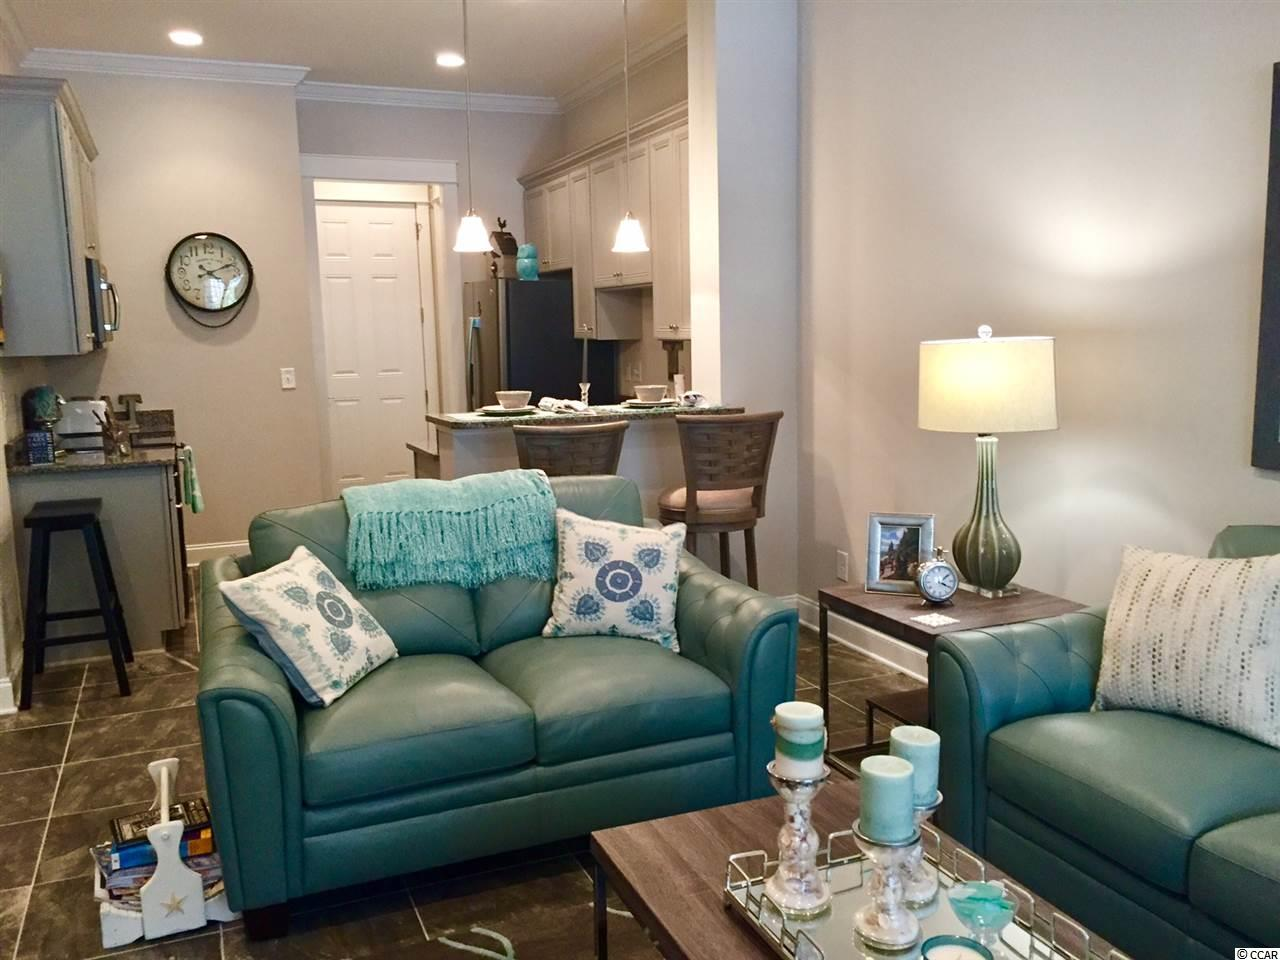 Contact your Realtor for this 2 bedroom condo for sale at  Market Common, The